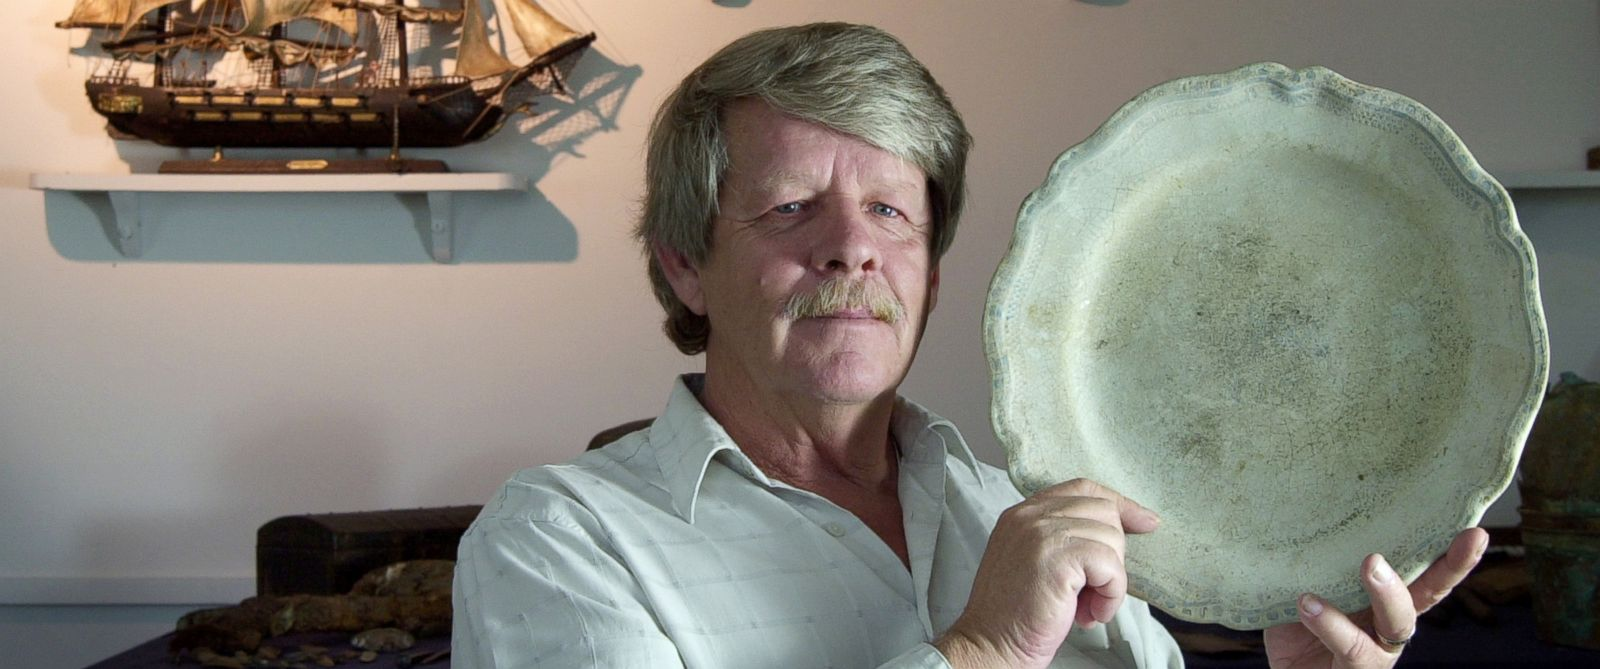 PHOTO: In this file photo, treasure hunter Greg Brooks is pictured on March 25, 2004 in Portland, Maine.